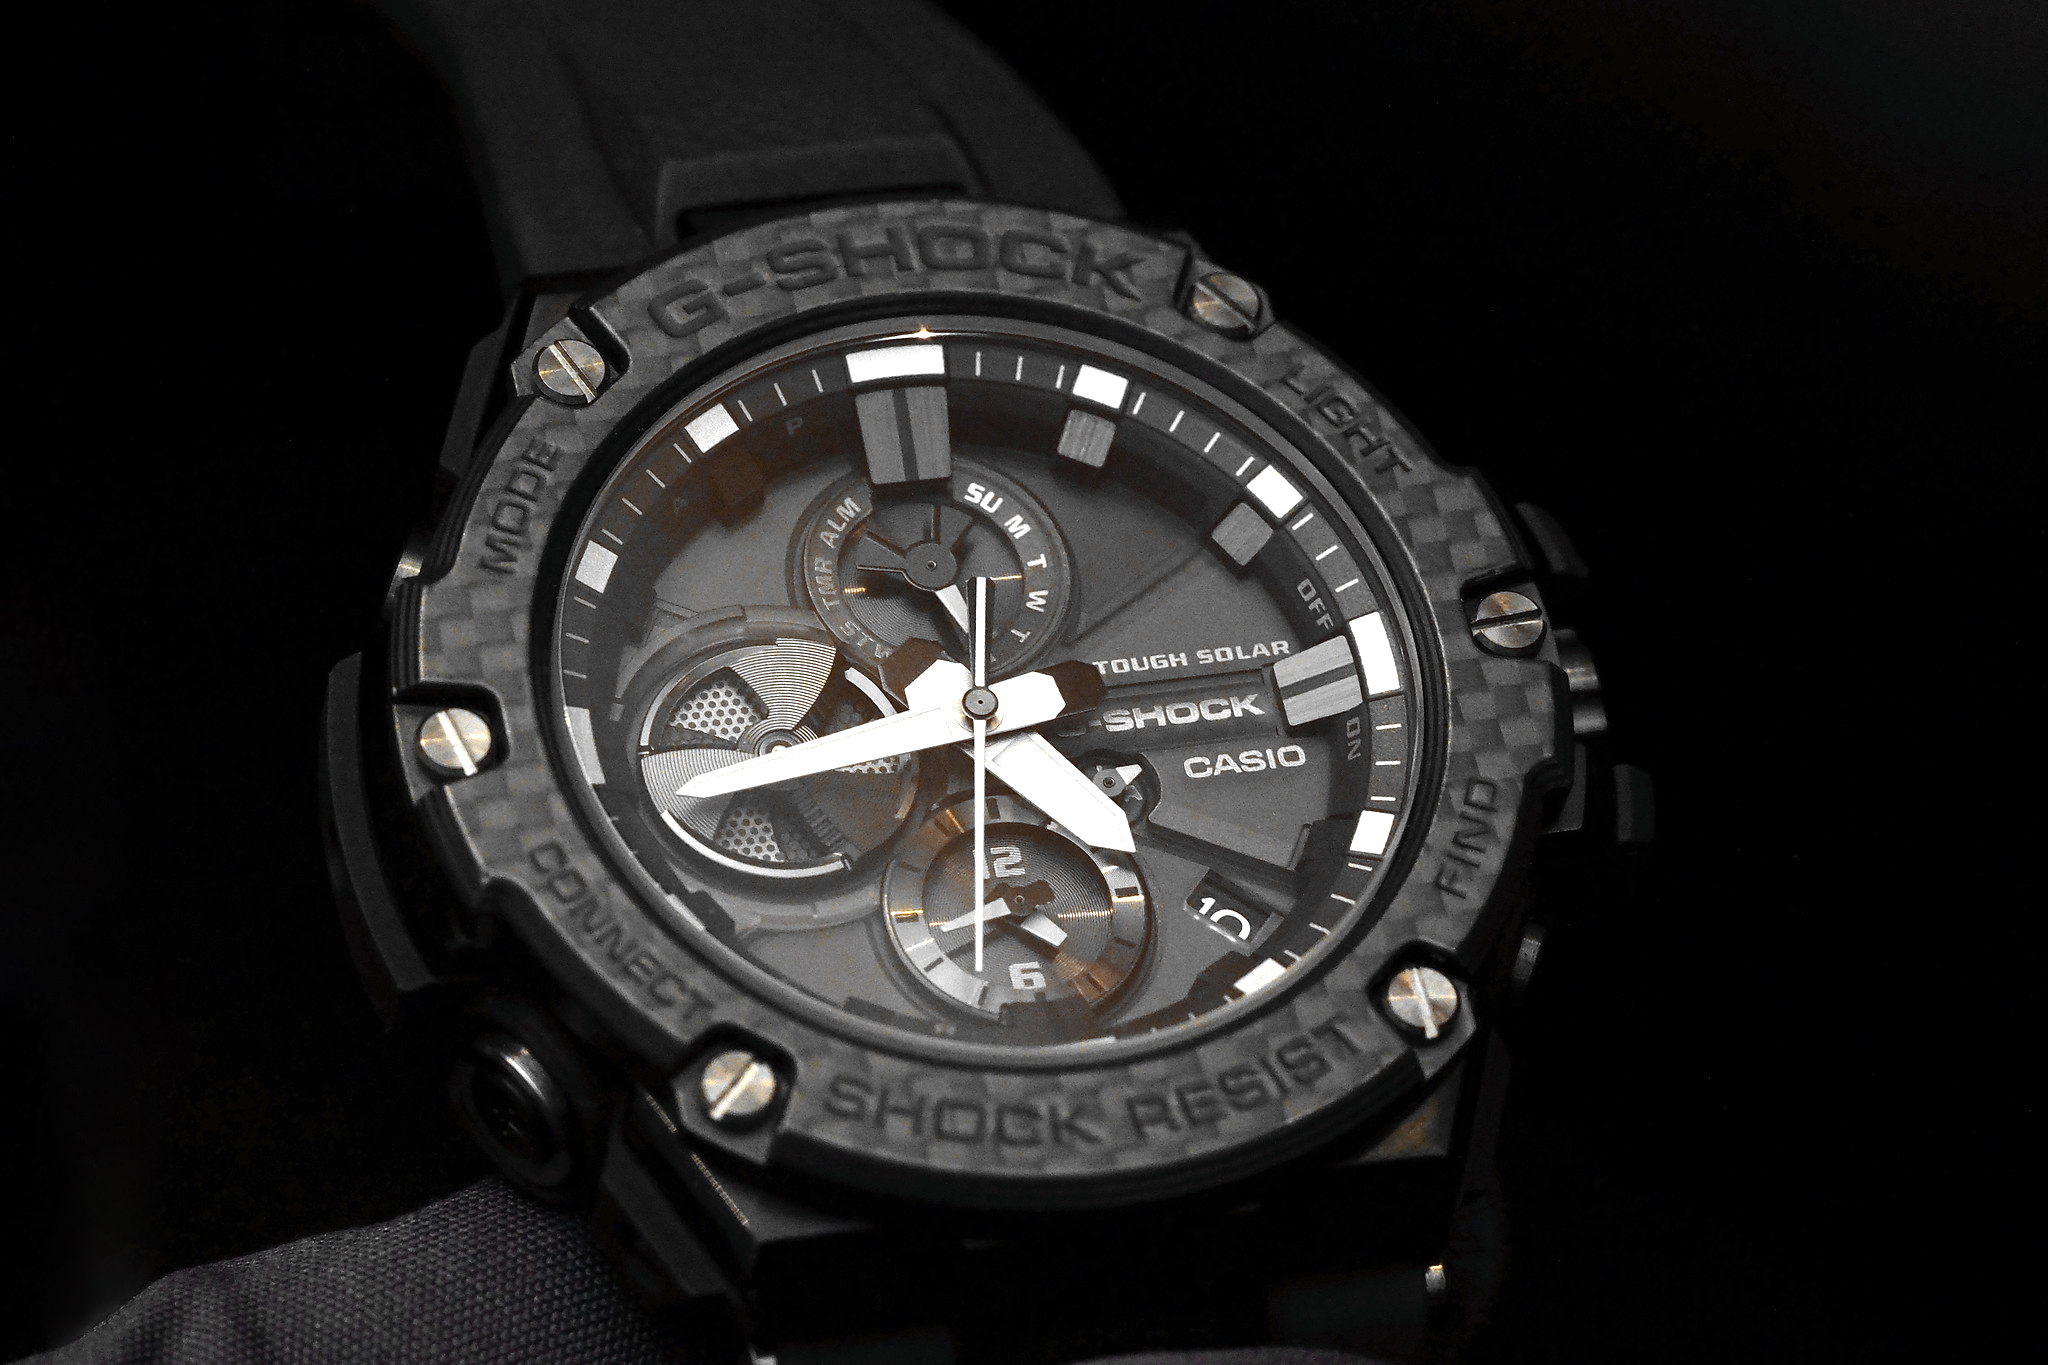 richard of carbon massa mille luxury rm felipe fiber best watches watch trends